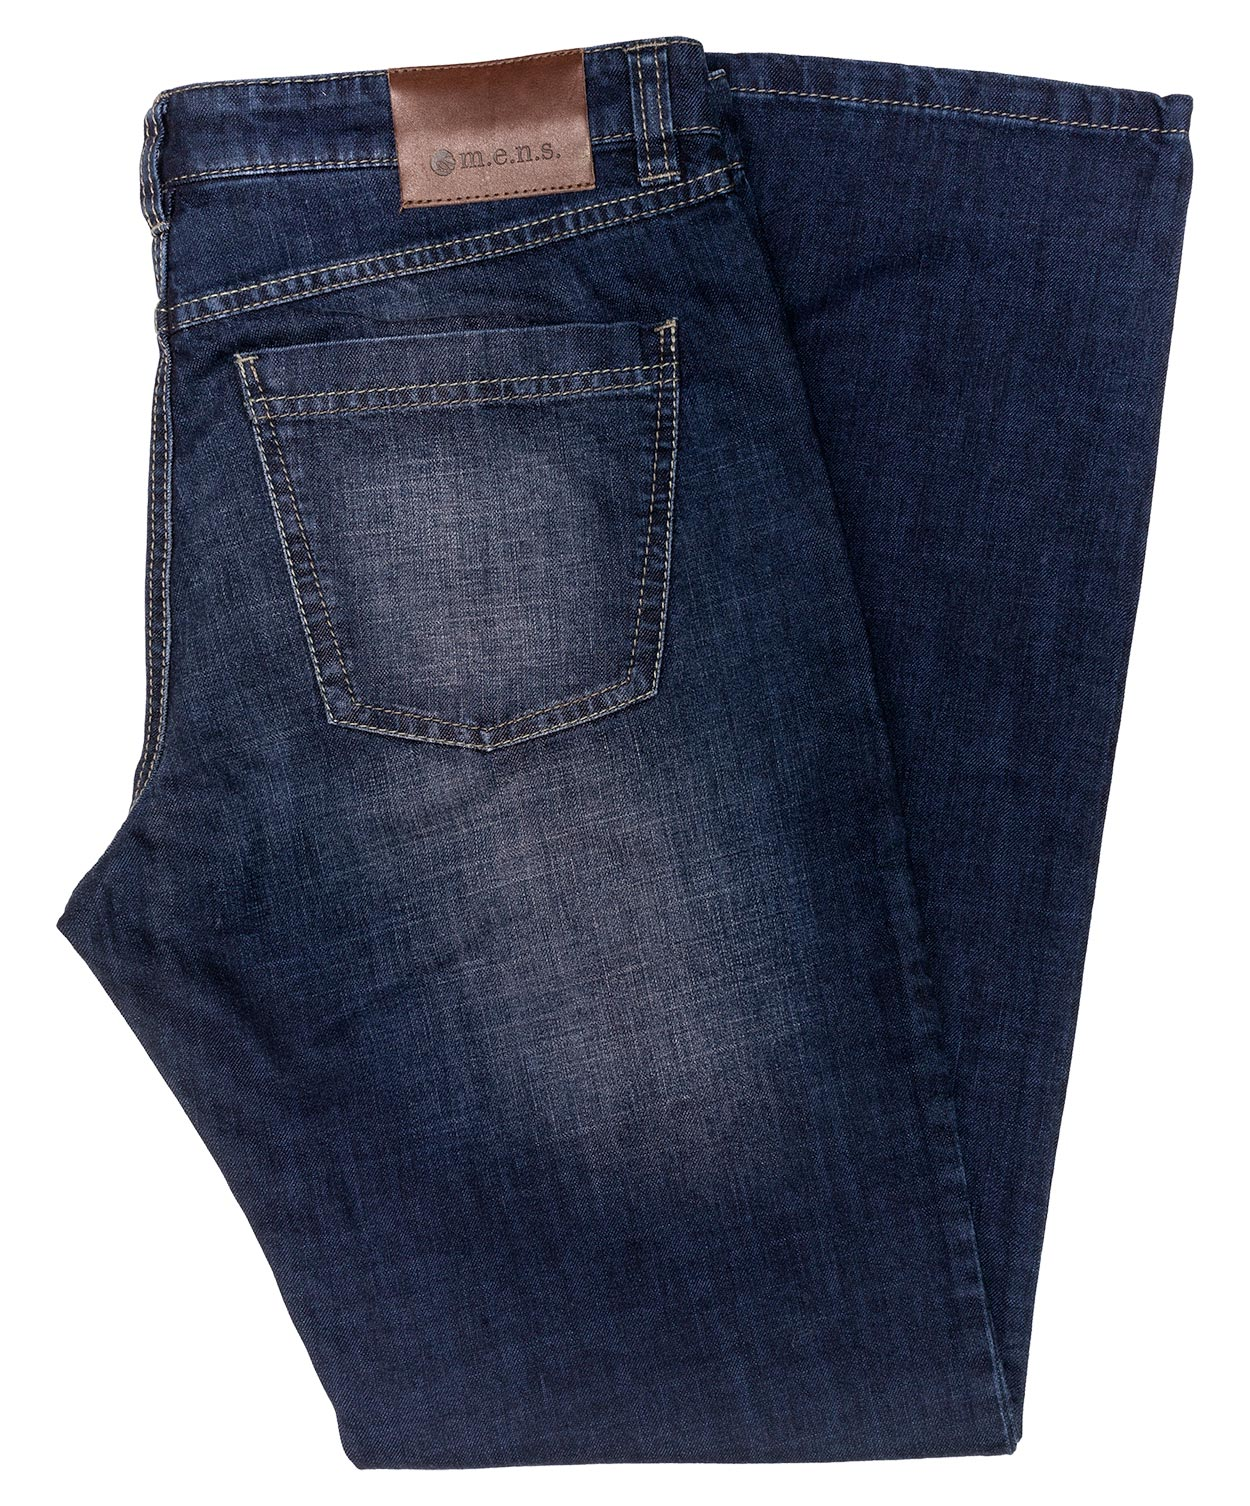 Navy/Cobalt Trim Denim